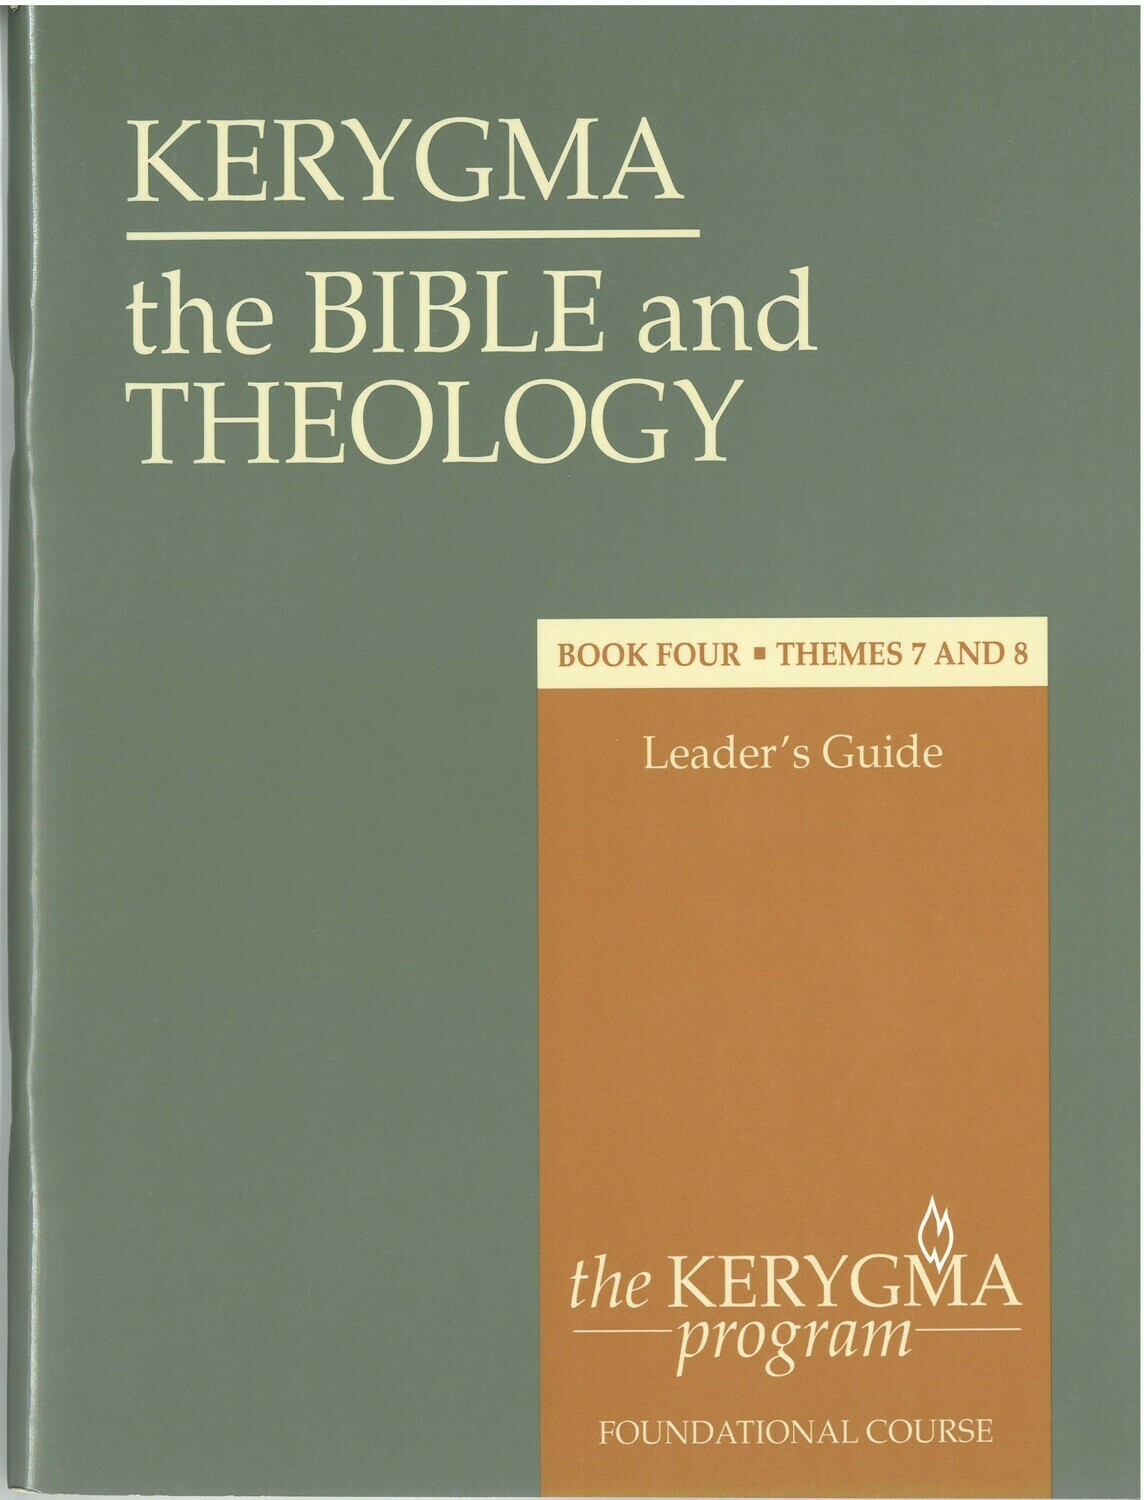 Bible and Theology: Book Four. Leader's Guide. Themes 7 and 8 (Kerygma)